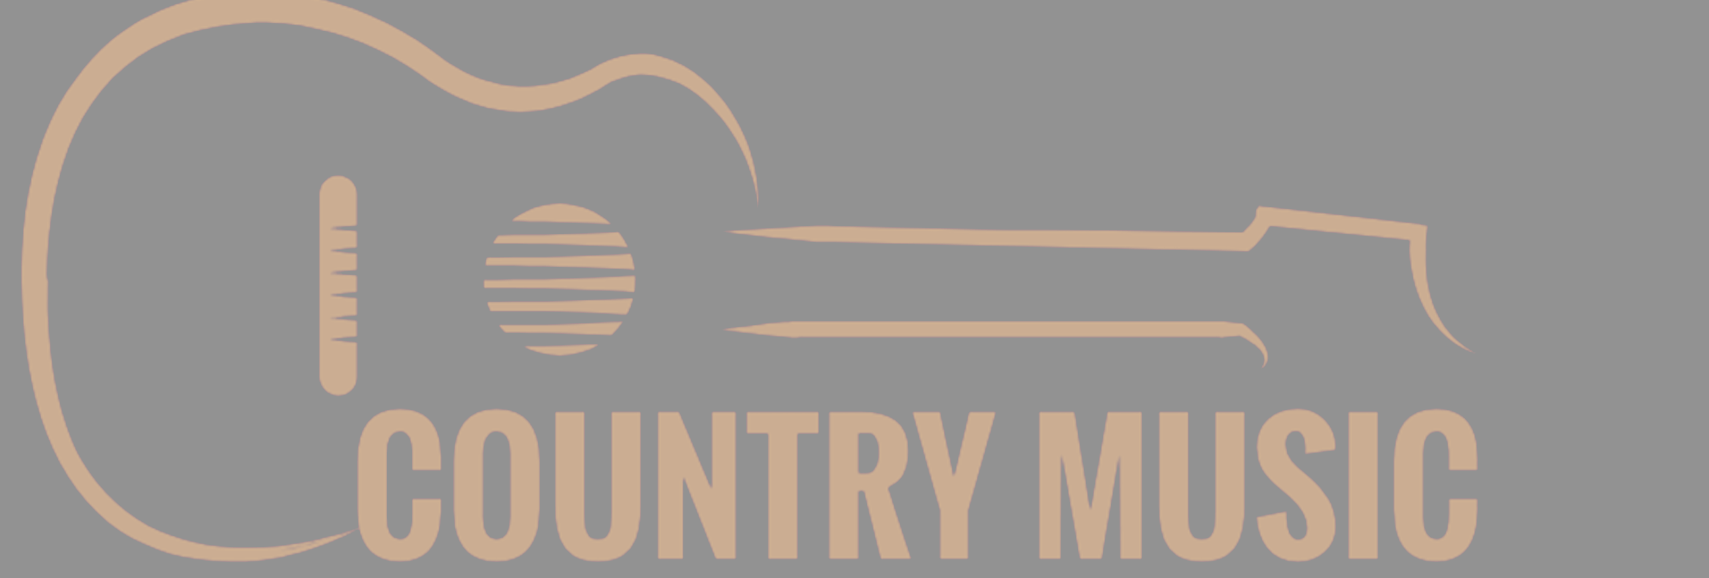 enter new country music